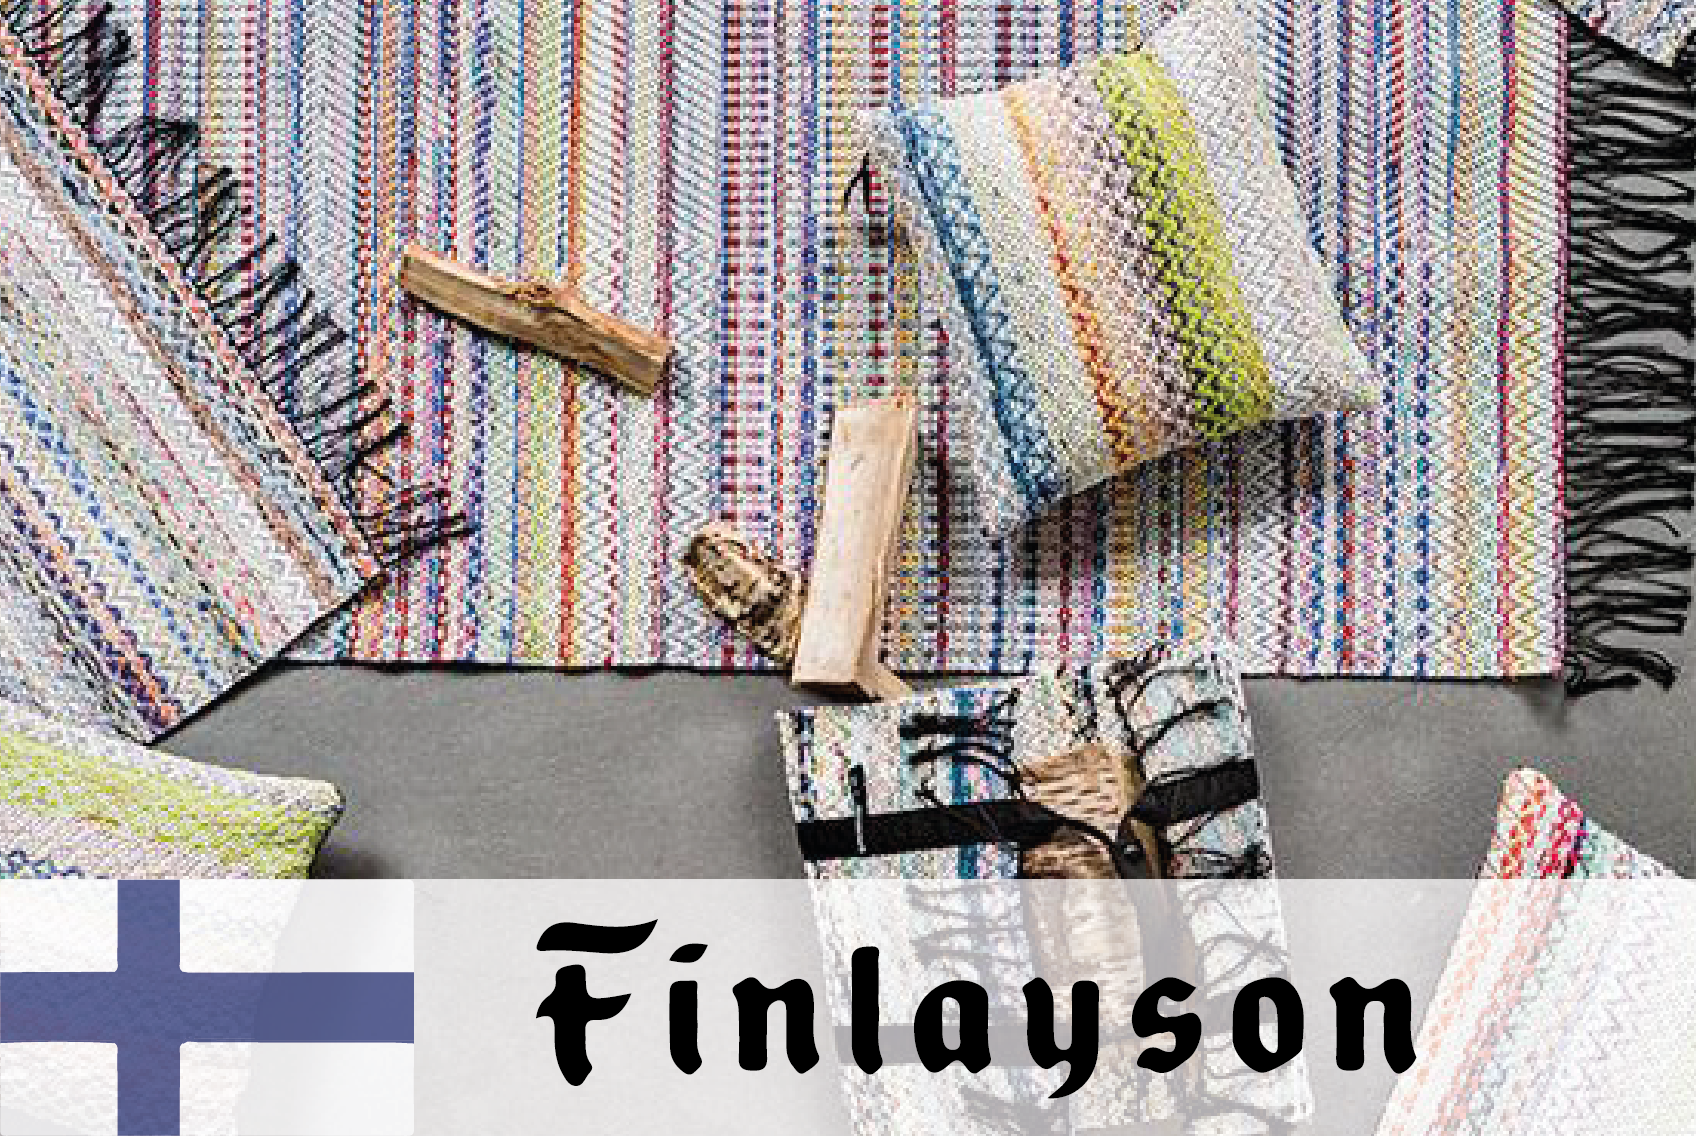 #11 Finlayson – From end-of-life bed sheets to designer rugs - CIRCit Nord